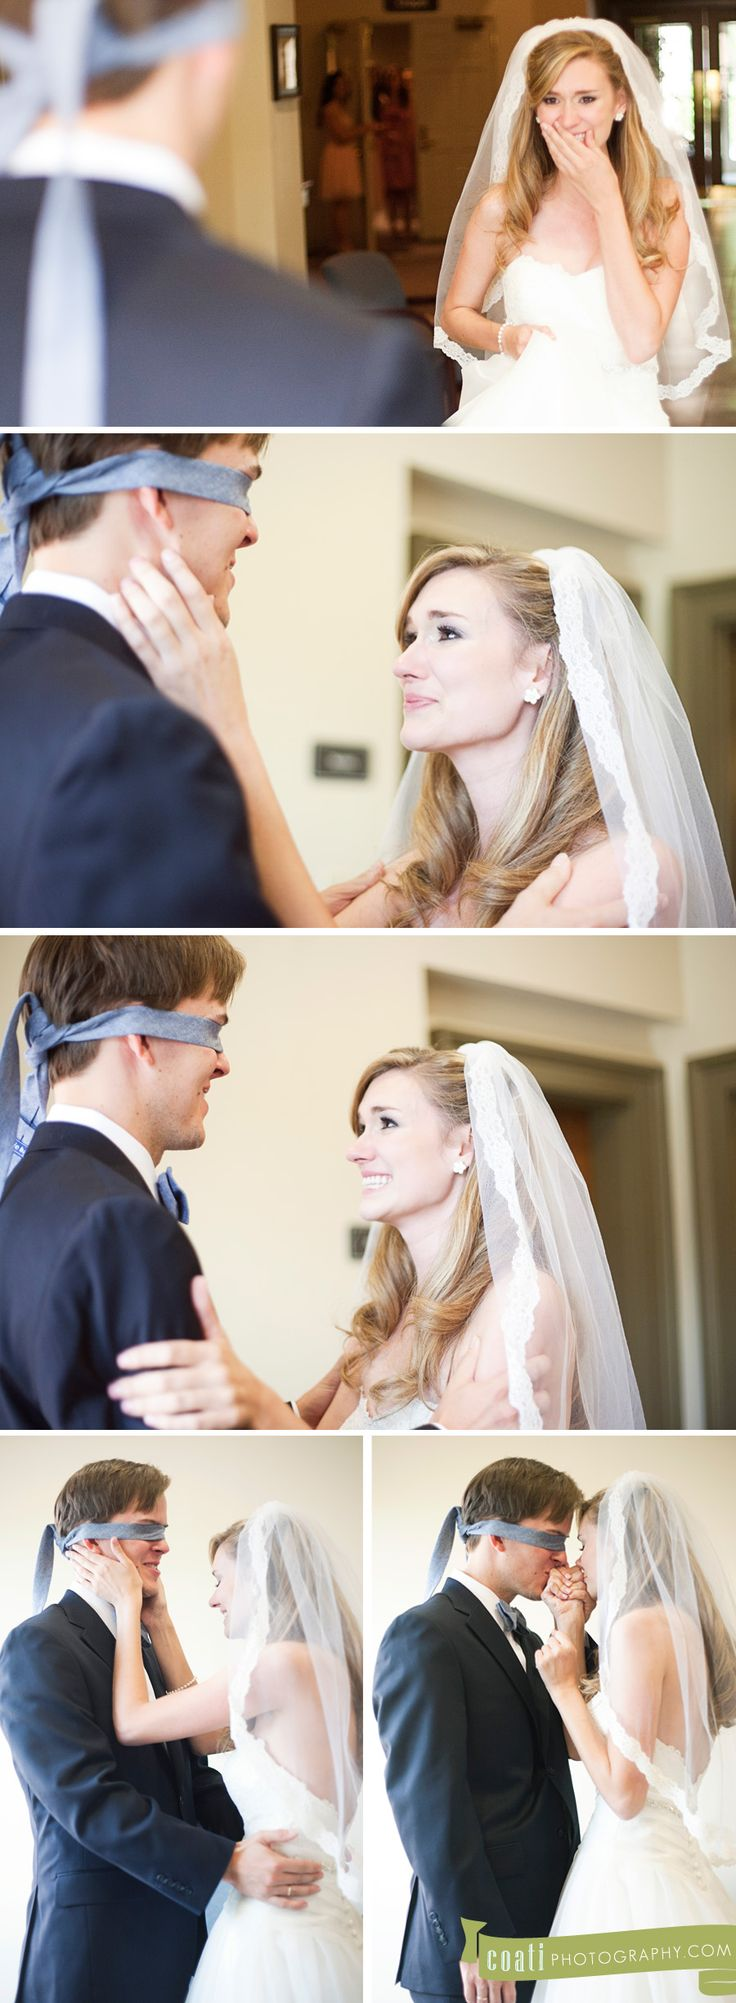 """See the groom without breaking the """"groom shouldn't see the bride before the wedding"""" rule."""